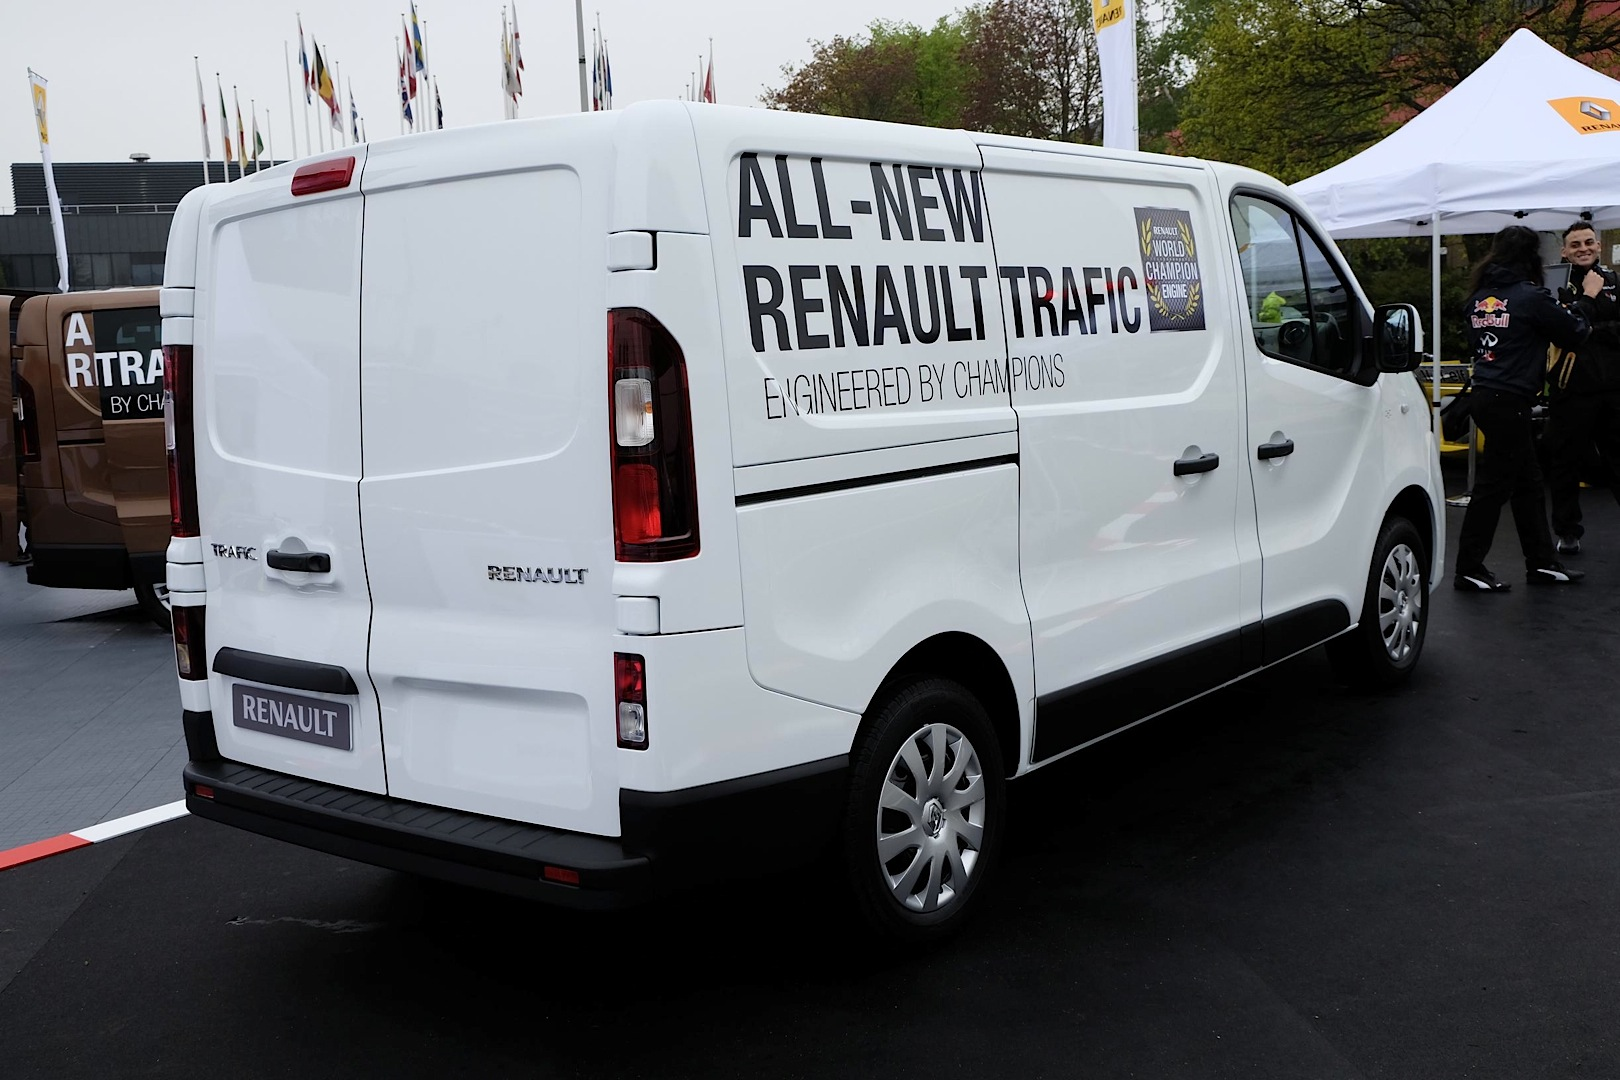 2014 [Renault/Opel/Fiat/Nissan] Trafic/Vivaro/Talento/NV300 - Page 6 New-renault-master-panel-van-unveiled-at-cv-show-photo-gallery_5